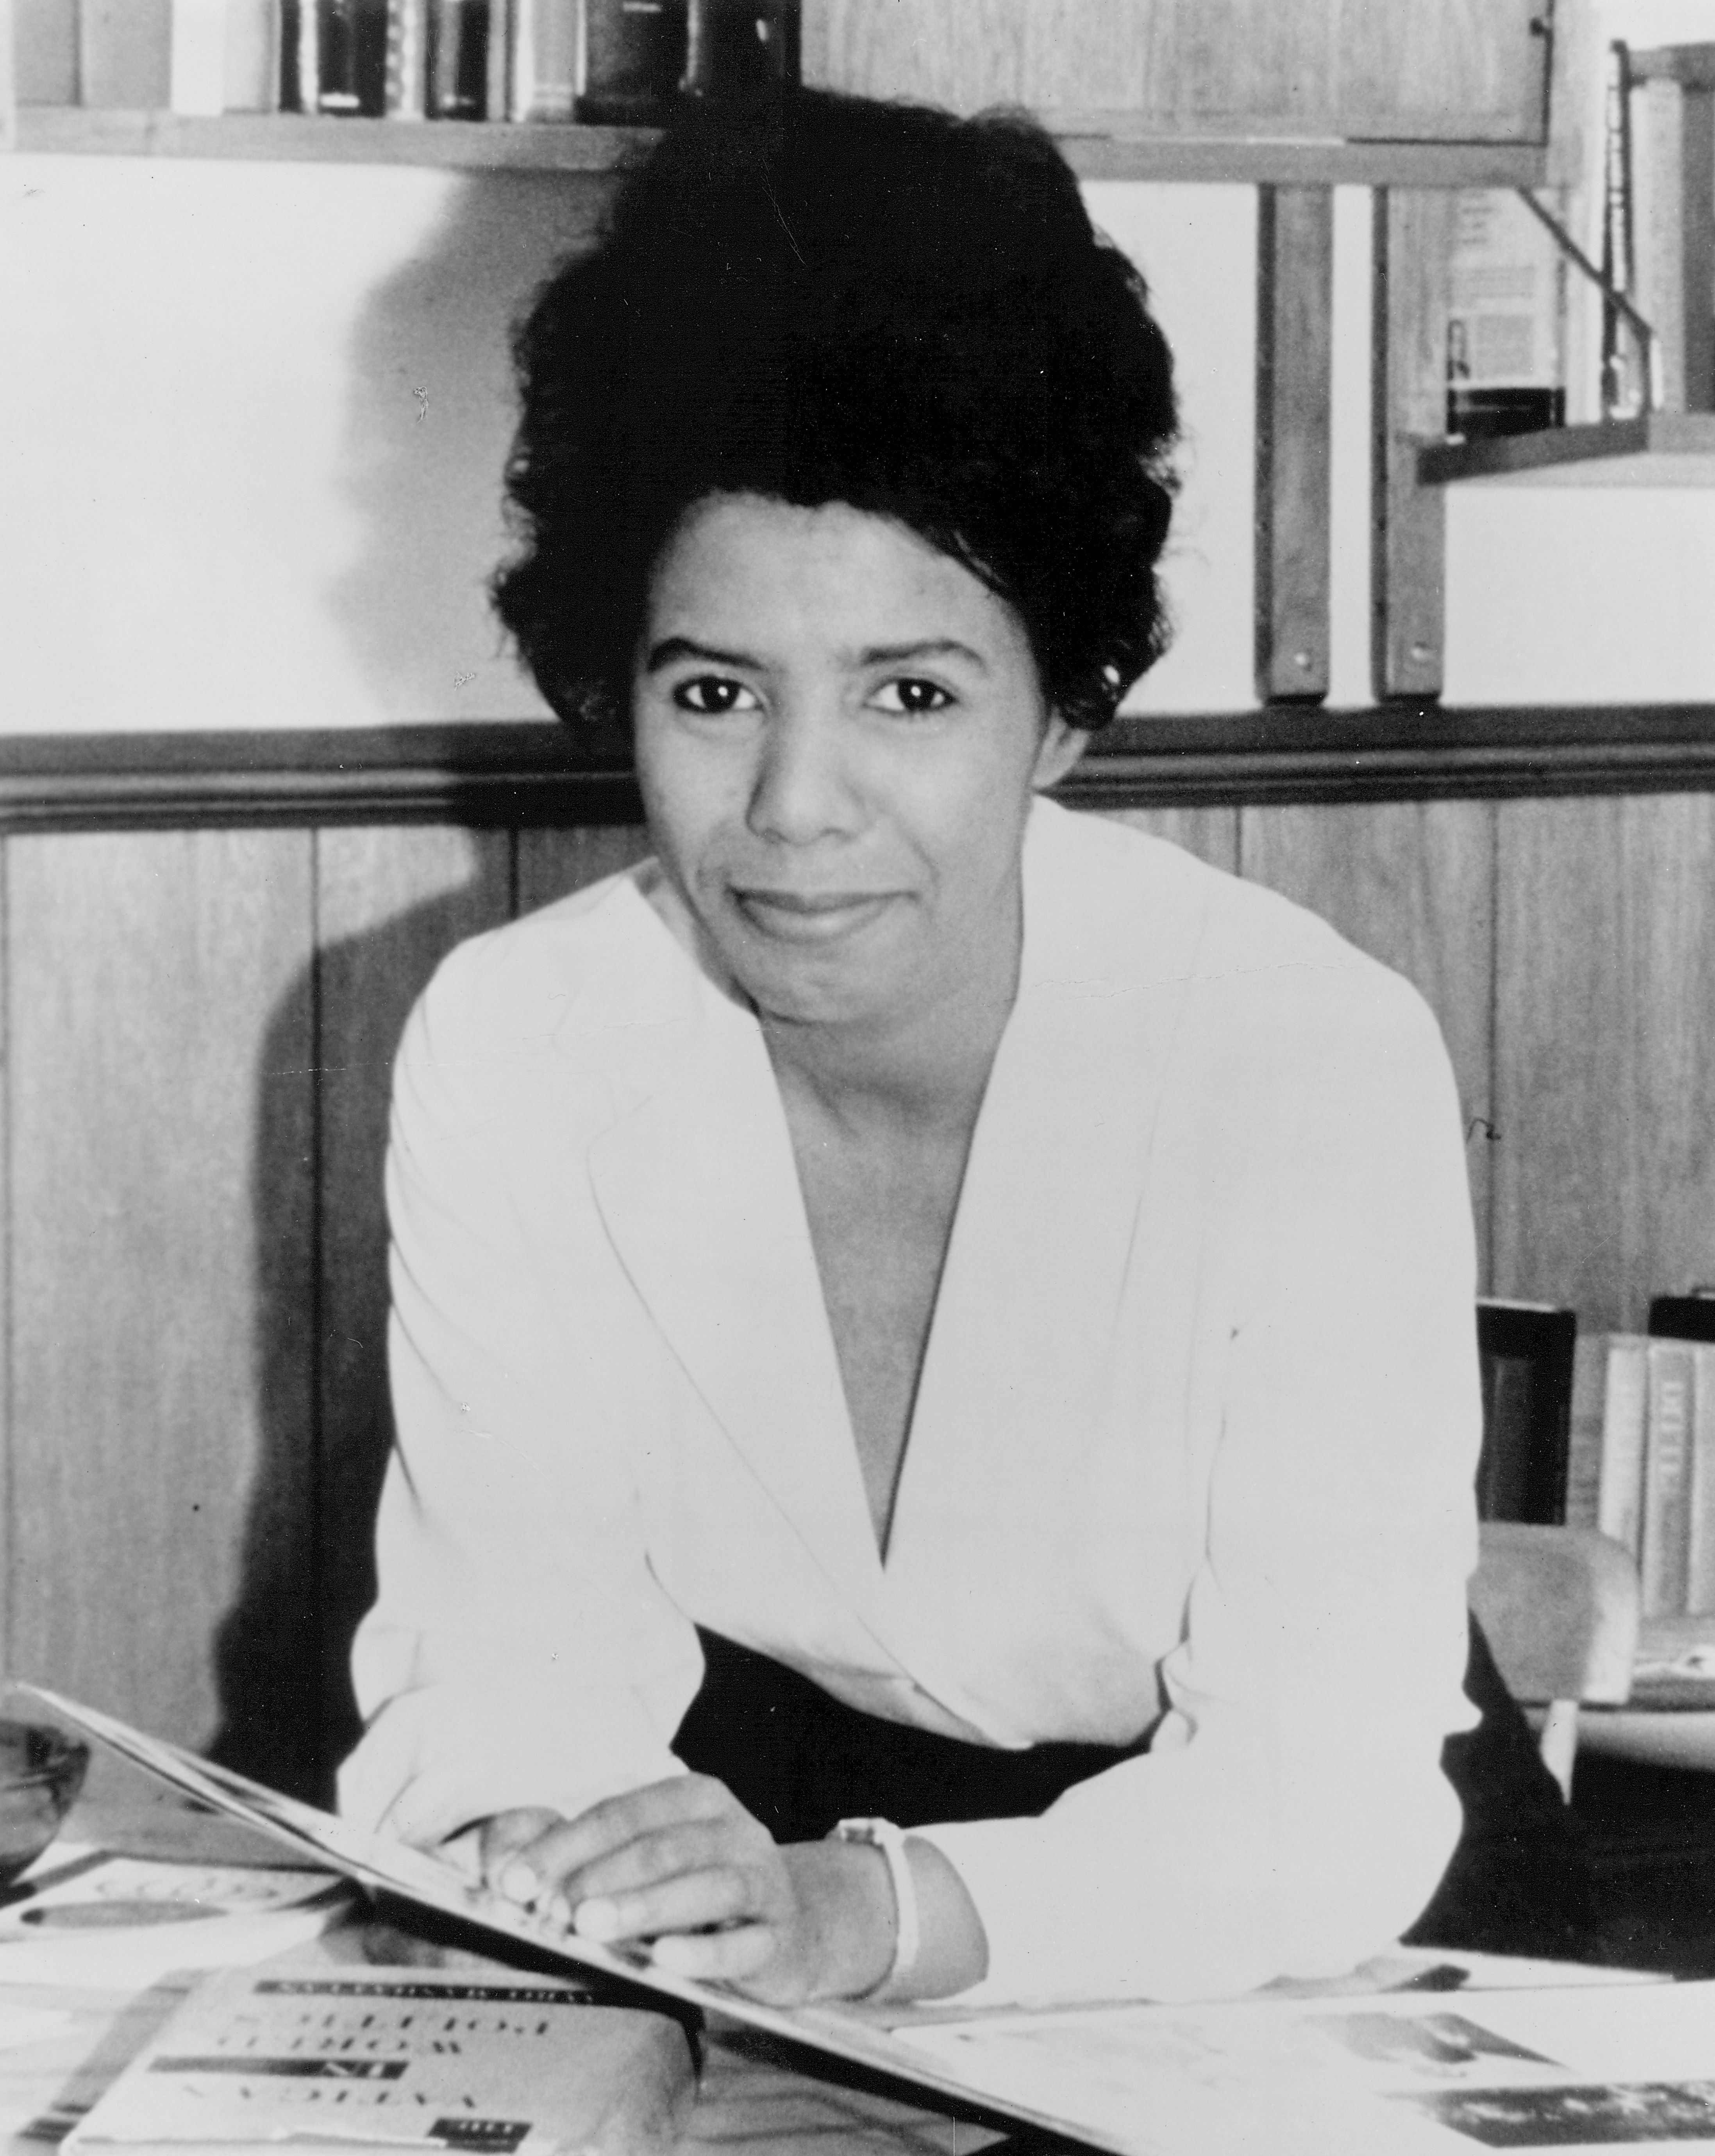 lorraine hansberry Lorraine hansberry: lorraine hansberry, american playwright whose a raisin in the sun (1959) was the first drama by an african american woman to be produced on broadway.